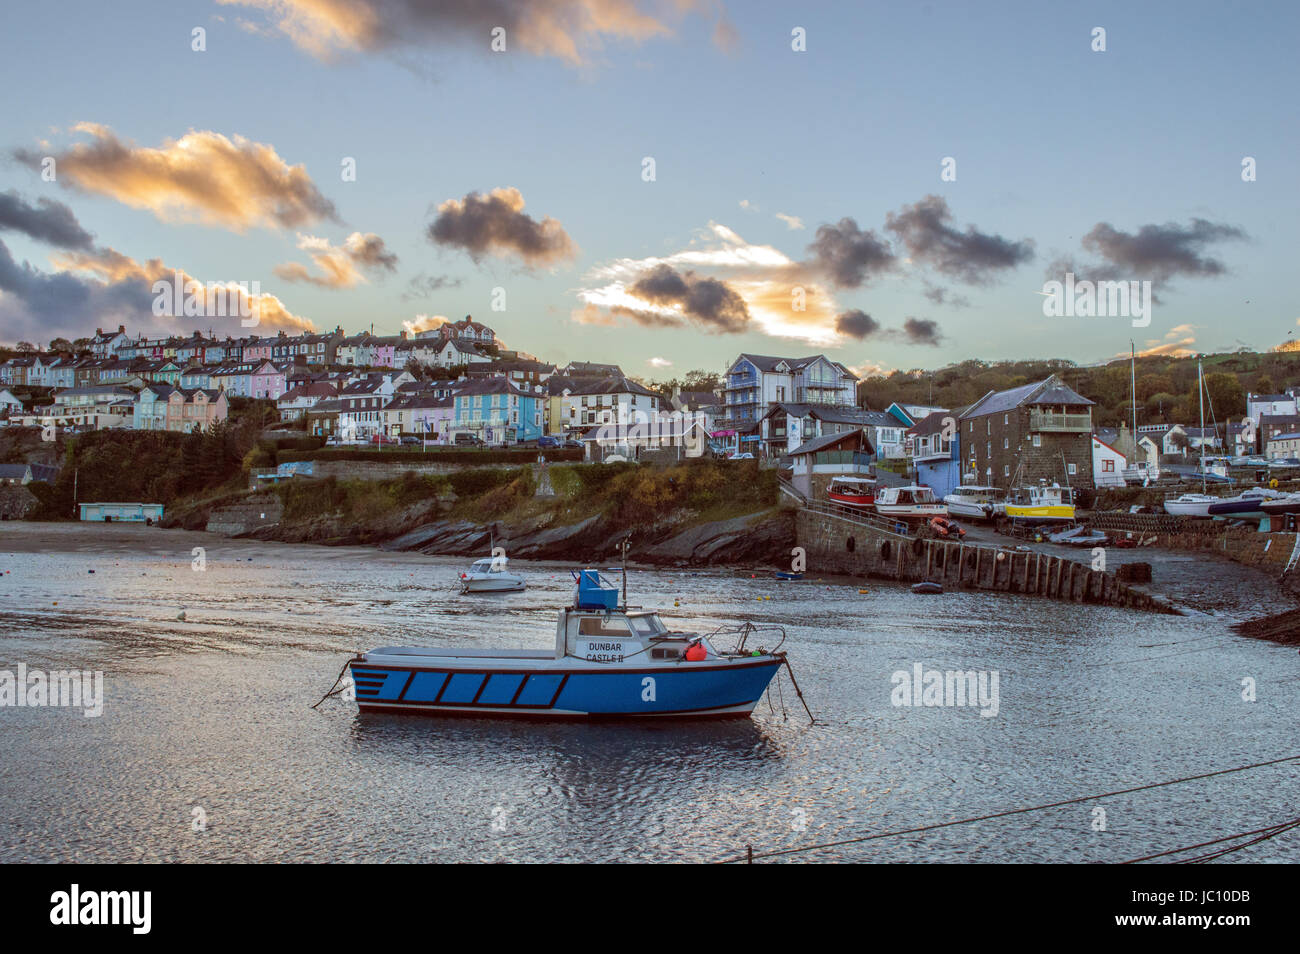 The beautiful seaside village of New Quay which overlooks Cardigan Bay on the West coast of Wales. - Stock Image